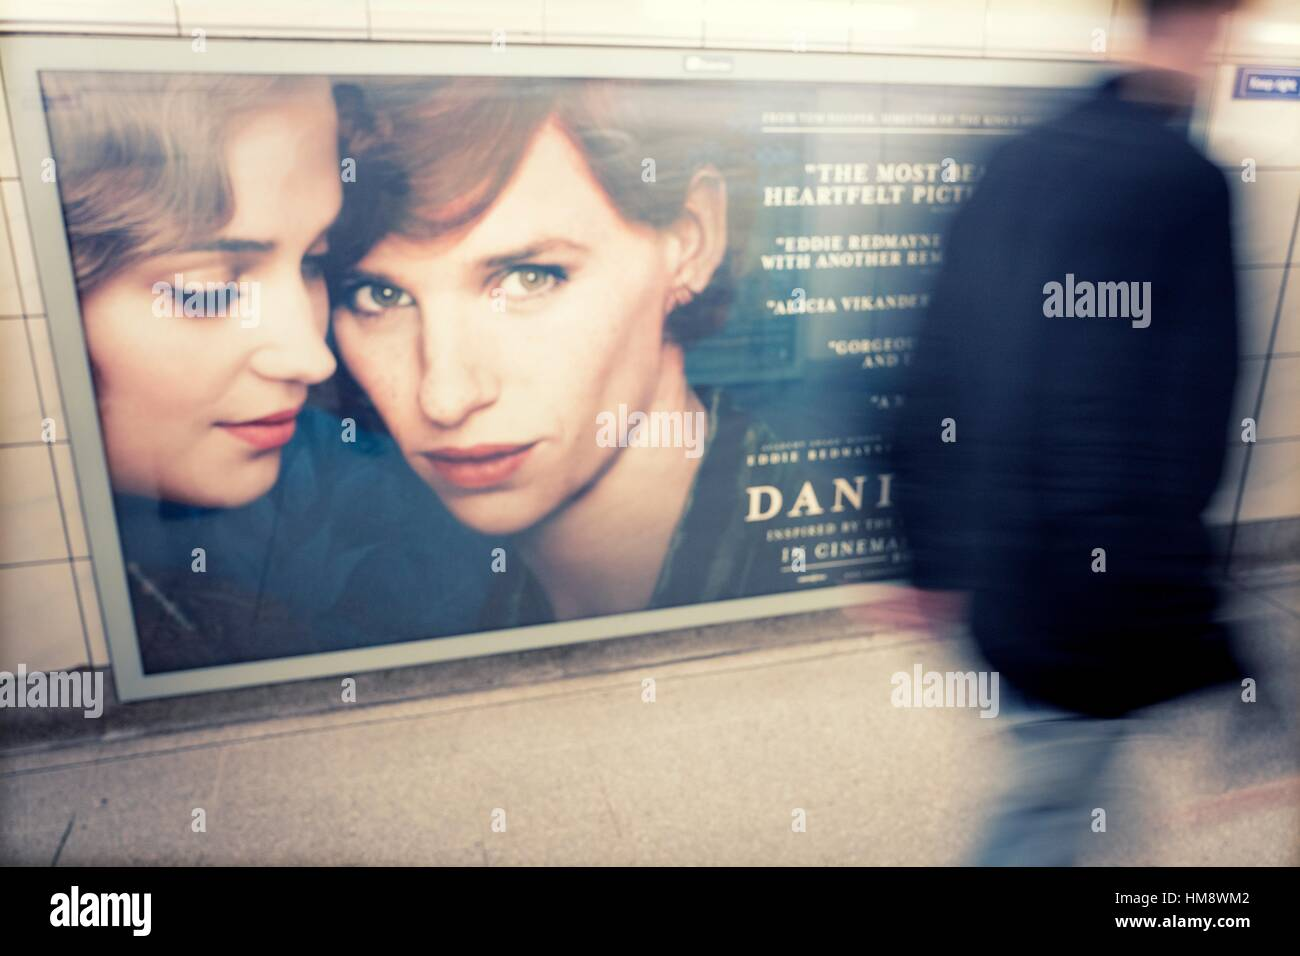 """The Danish Girl"" film poster in London Underground station. London, england Stock Photo"